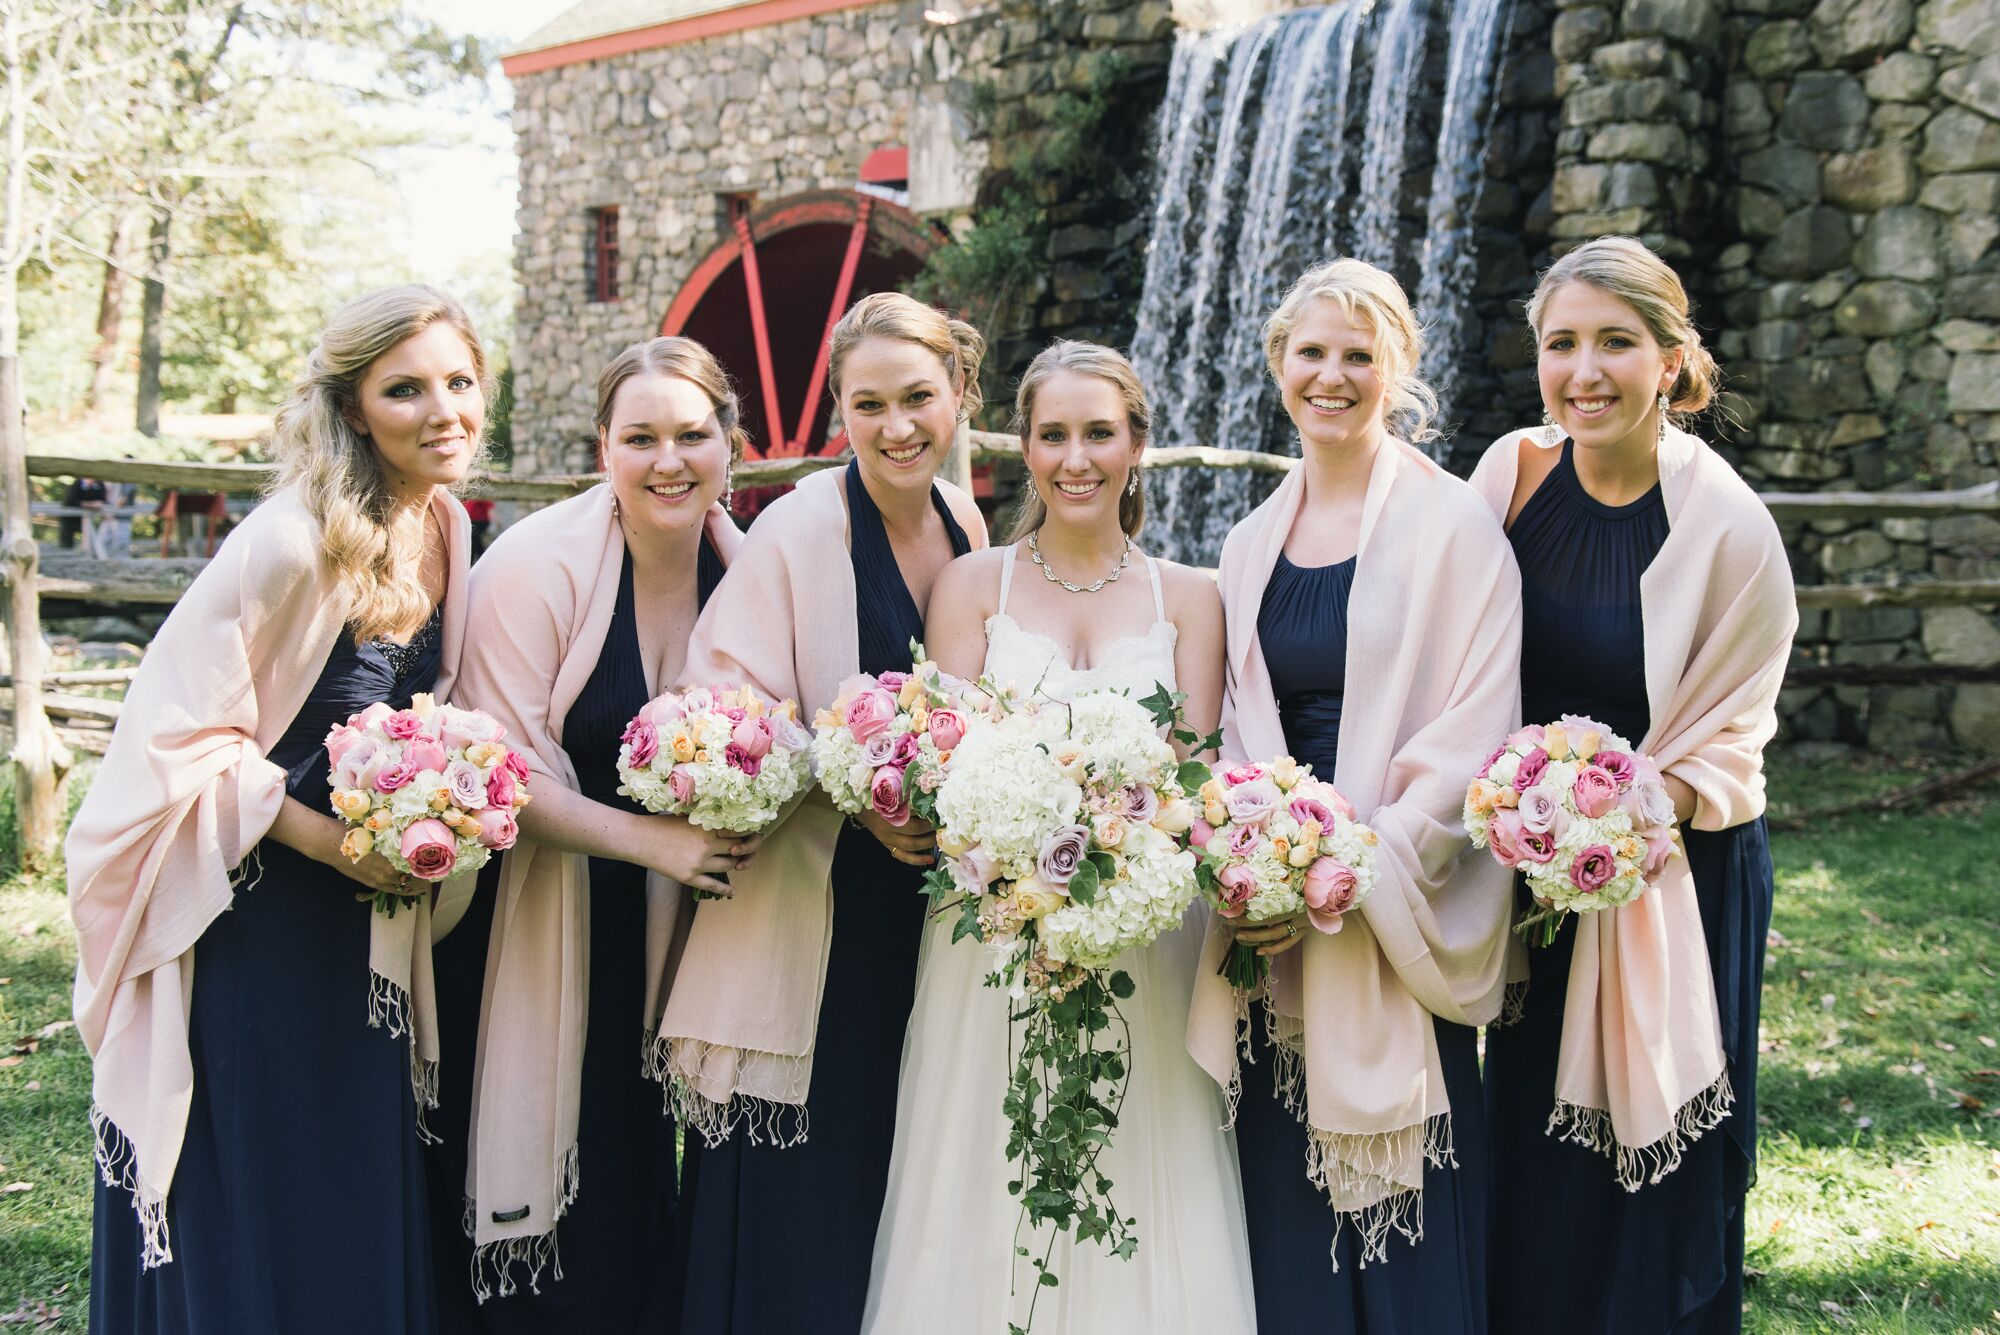 bridesmaids in long navy dresses and pink pashmina scarves